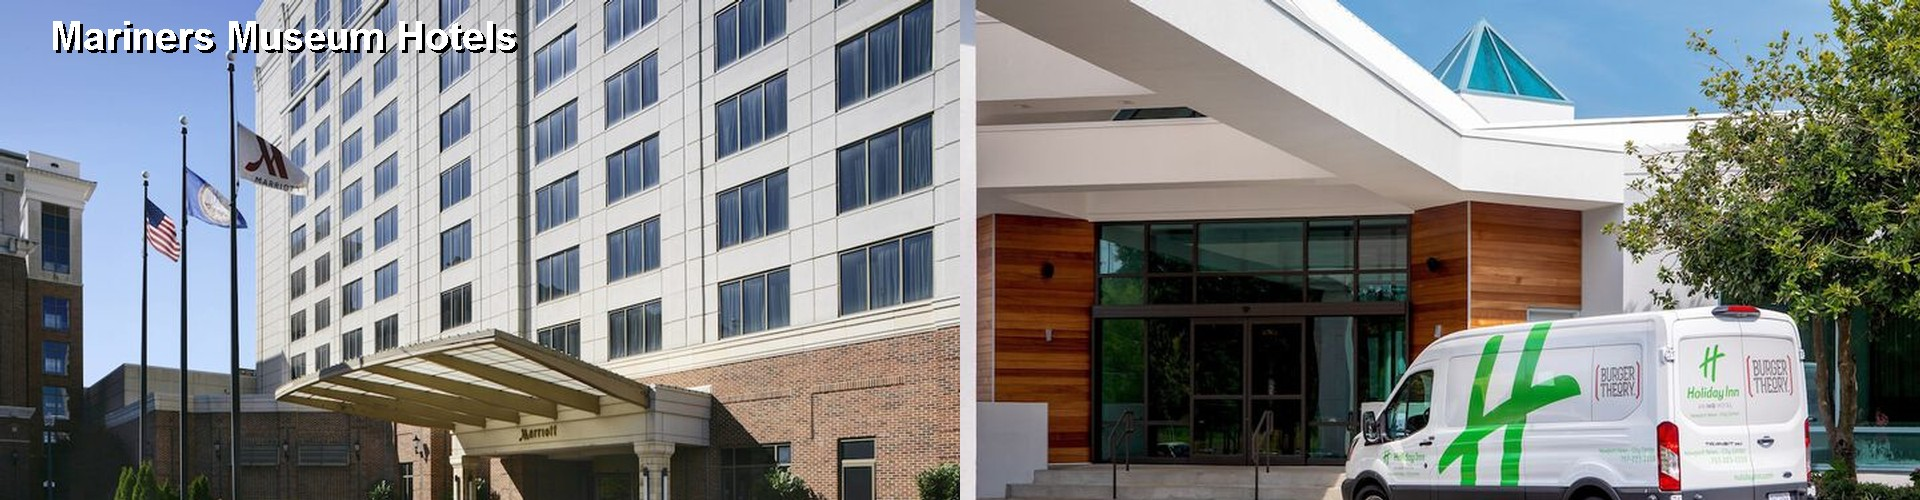 2 Best Hotels near Mariners Museum